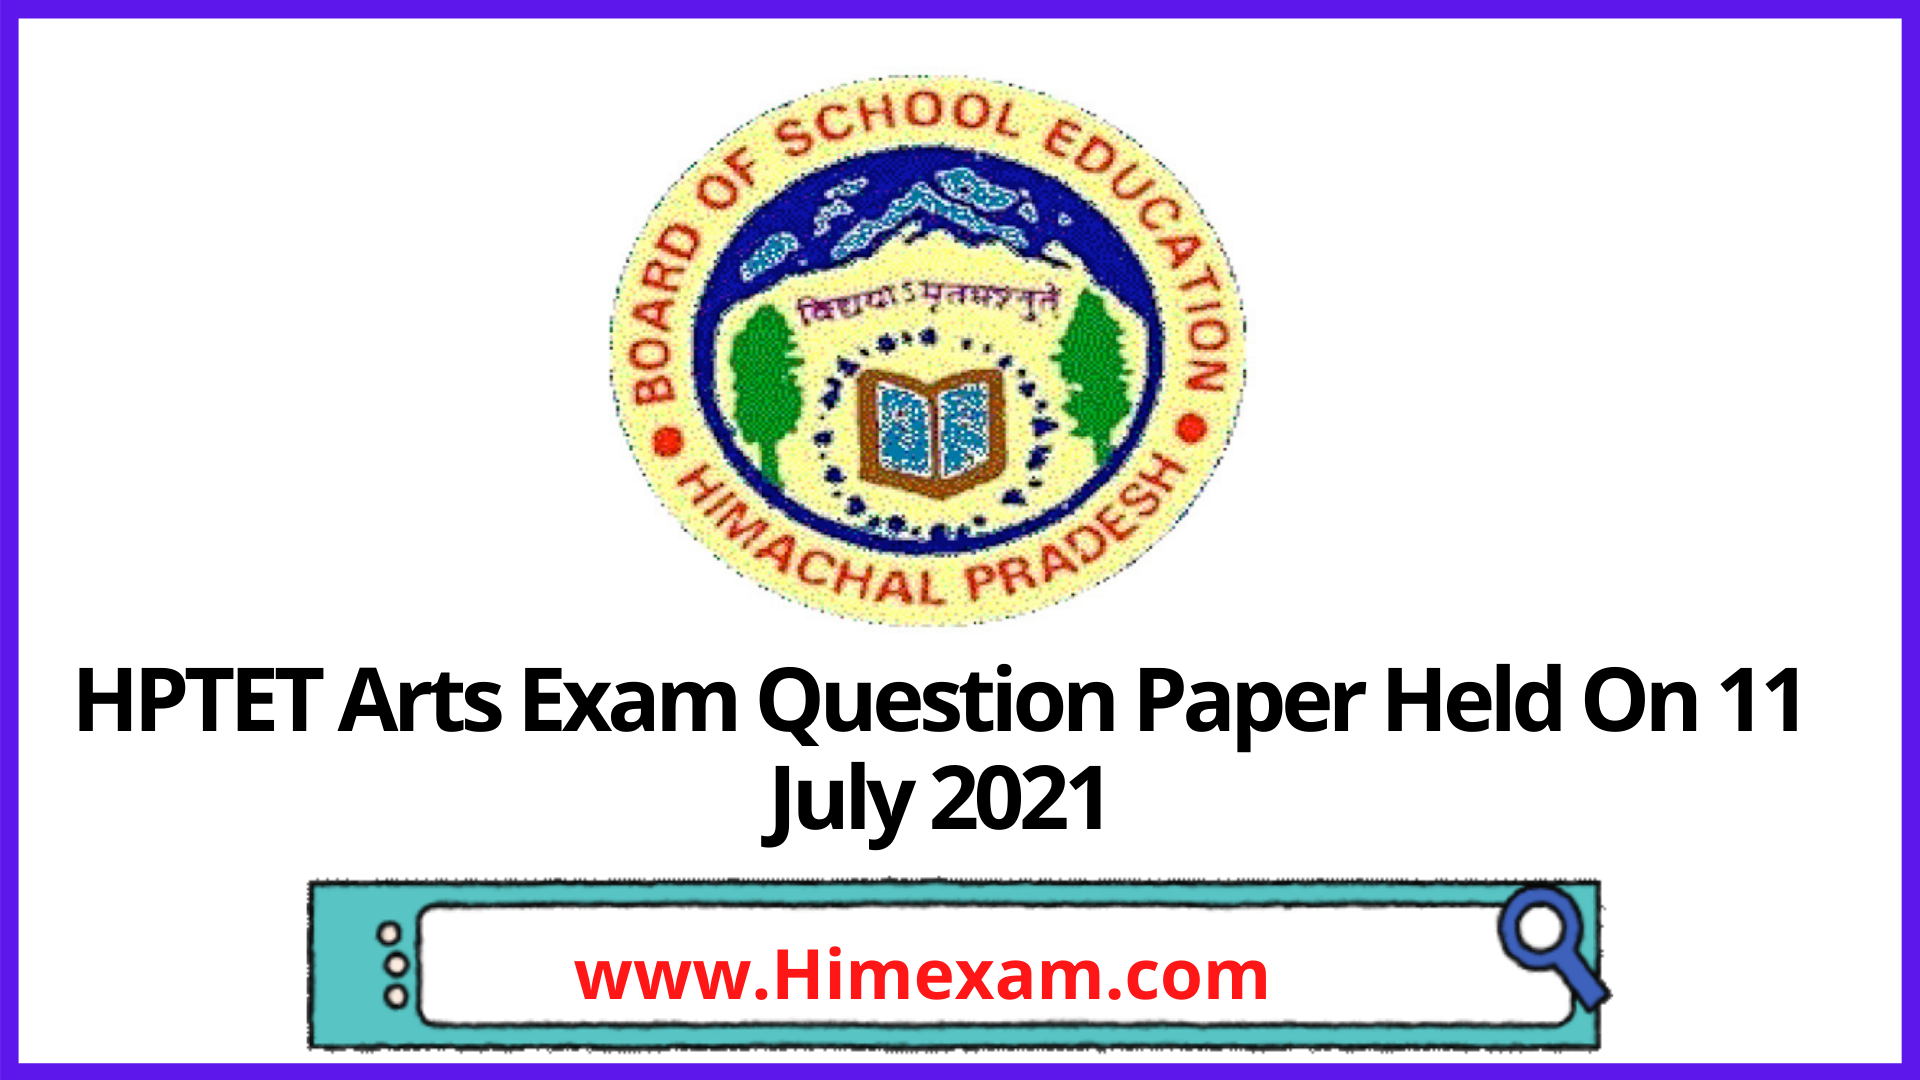 HPTET Arts Exam Question Paper Held On 11 July 2021